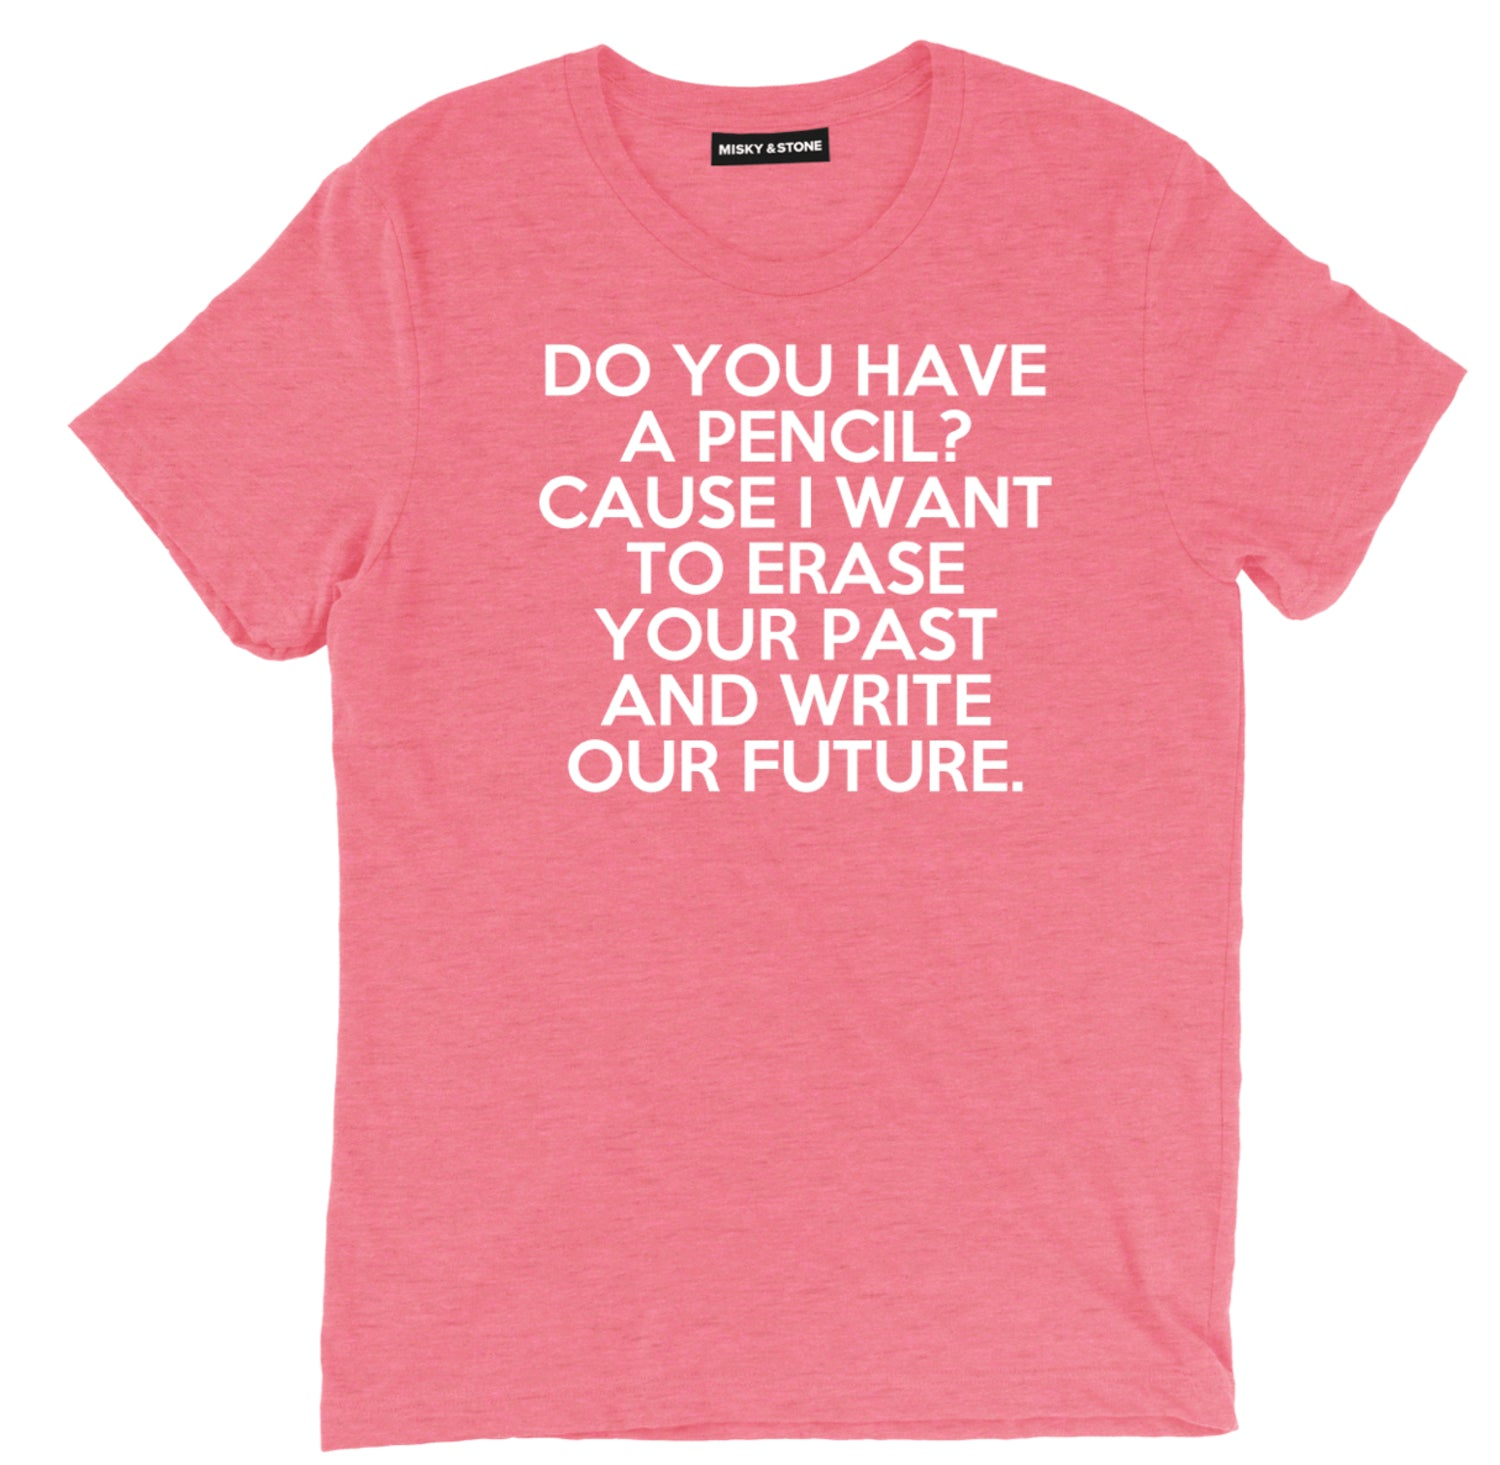 Do You Have A Pencil? Pick Up Line Tee Shirt